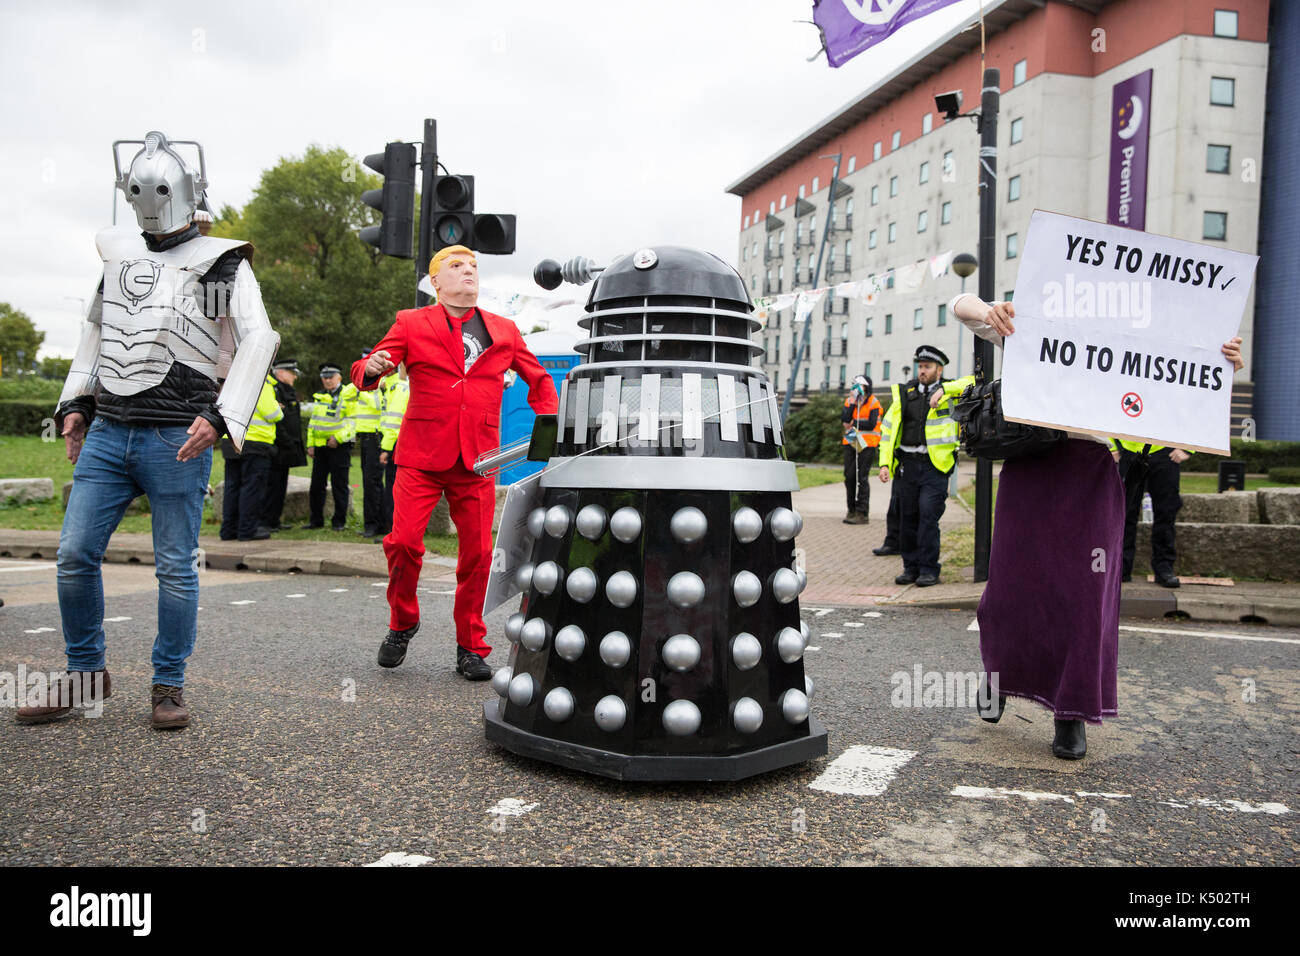 London, UK. 8th Sep, 2017. Daleks and other super villains protest against the DSEI arms fair to be held at the ExCel Centre next week. DSEI is one of the world's largest arms fairs and military delegations from states believed to be responsible for widespread abuses of human rights are expected to attend. Credit: Mark Kerrison/Alamy Live News - Stock Image